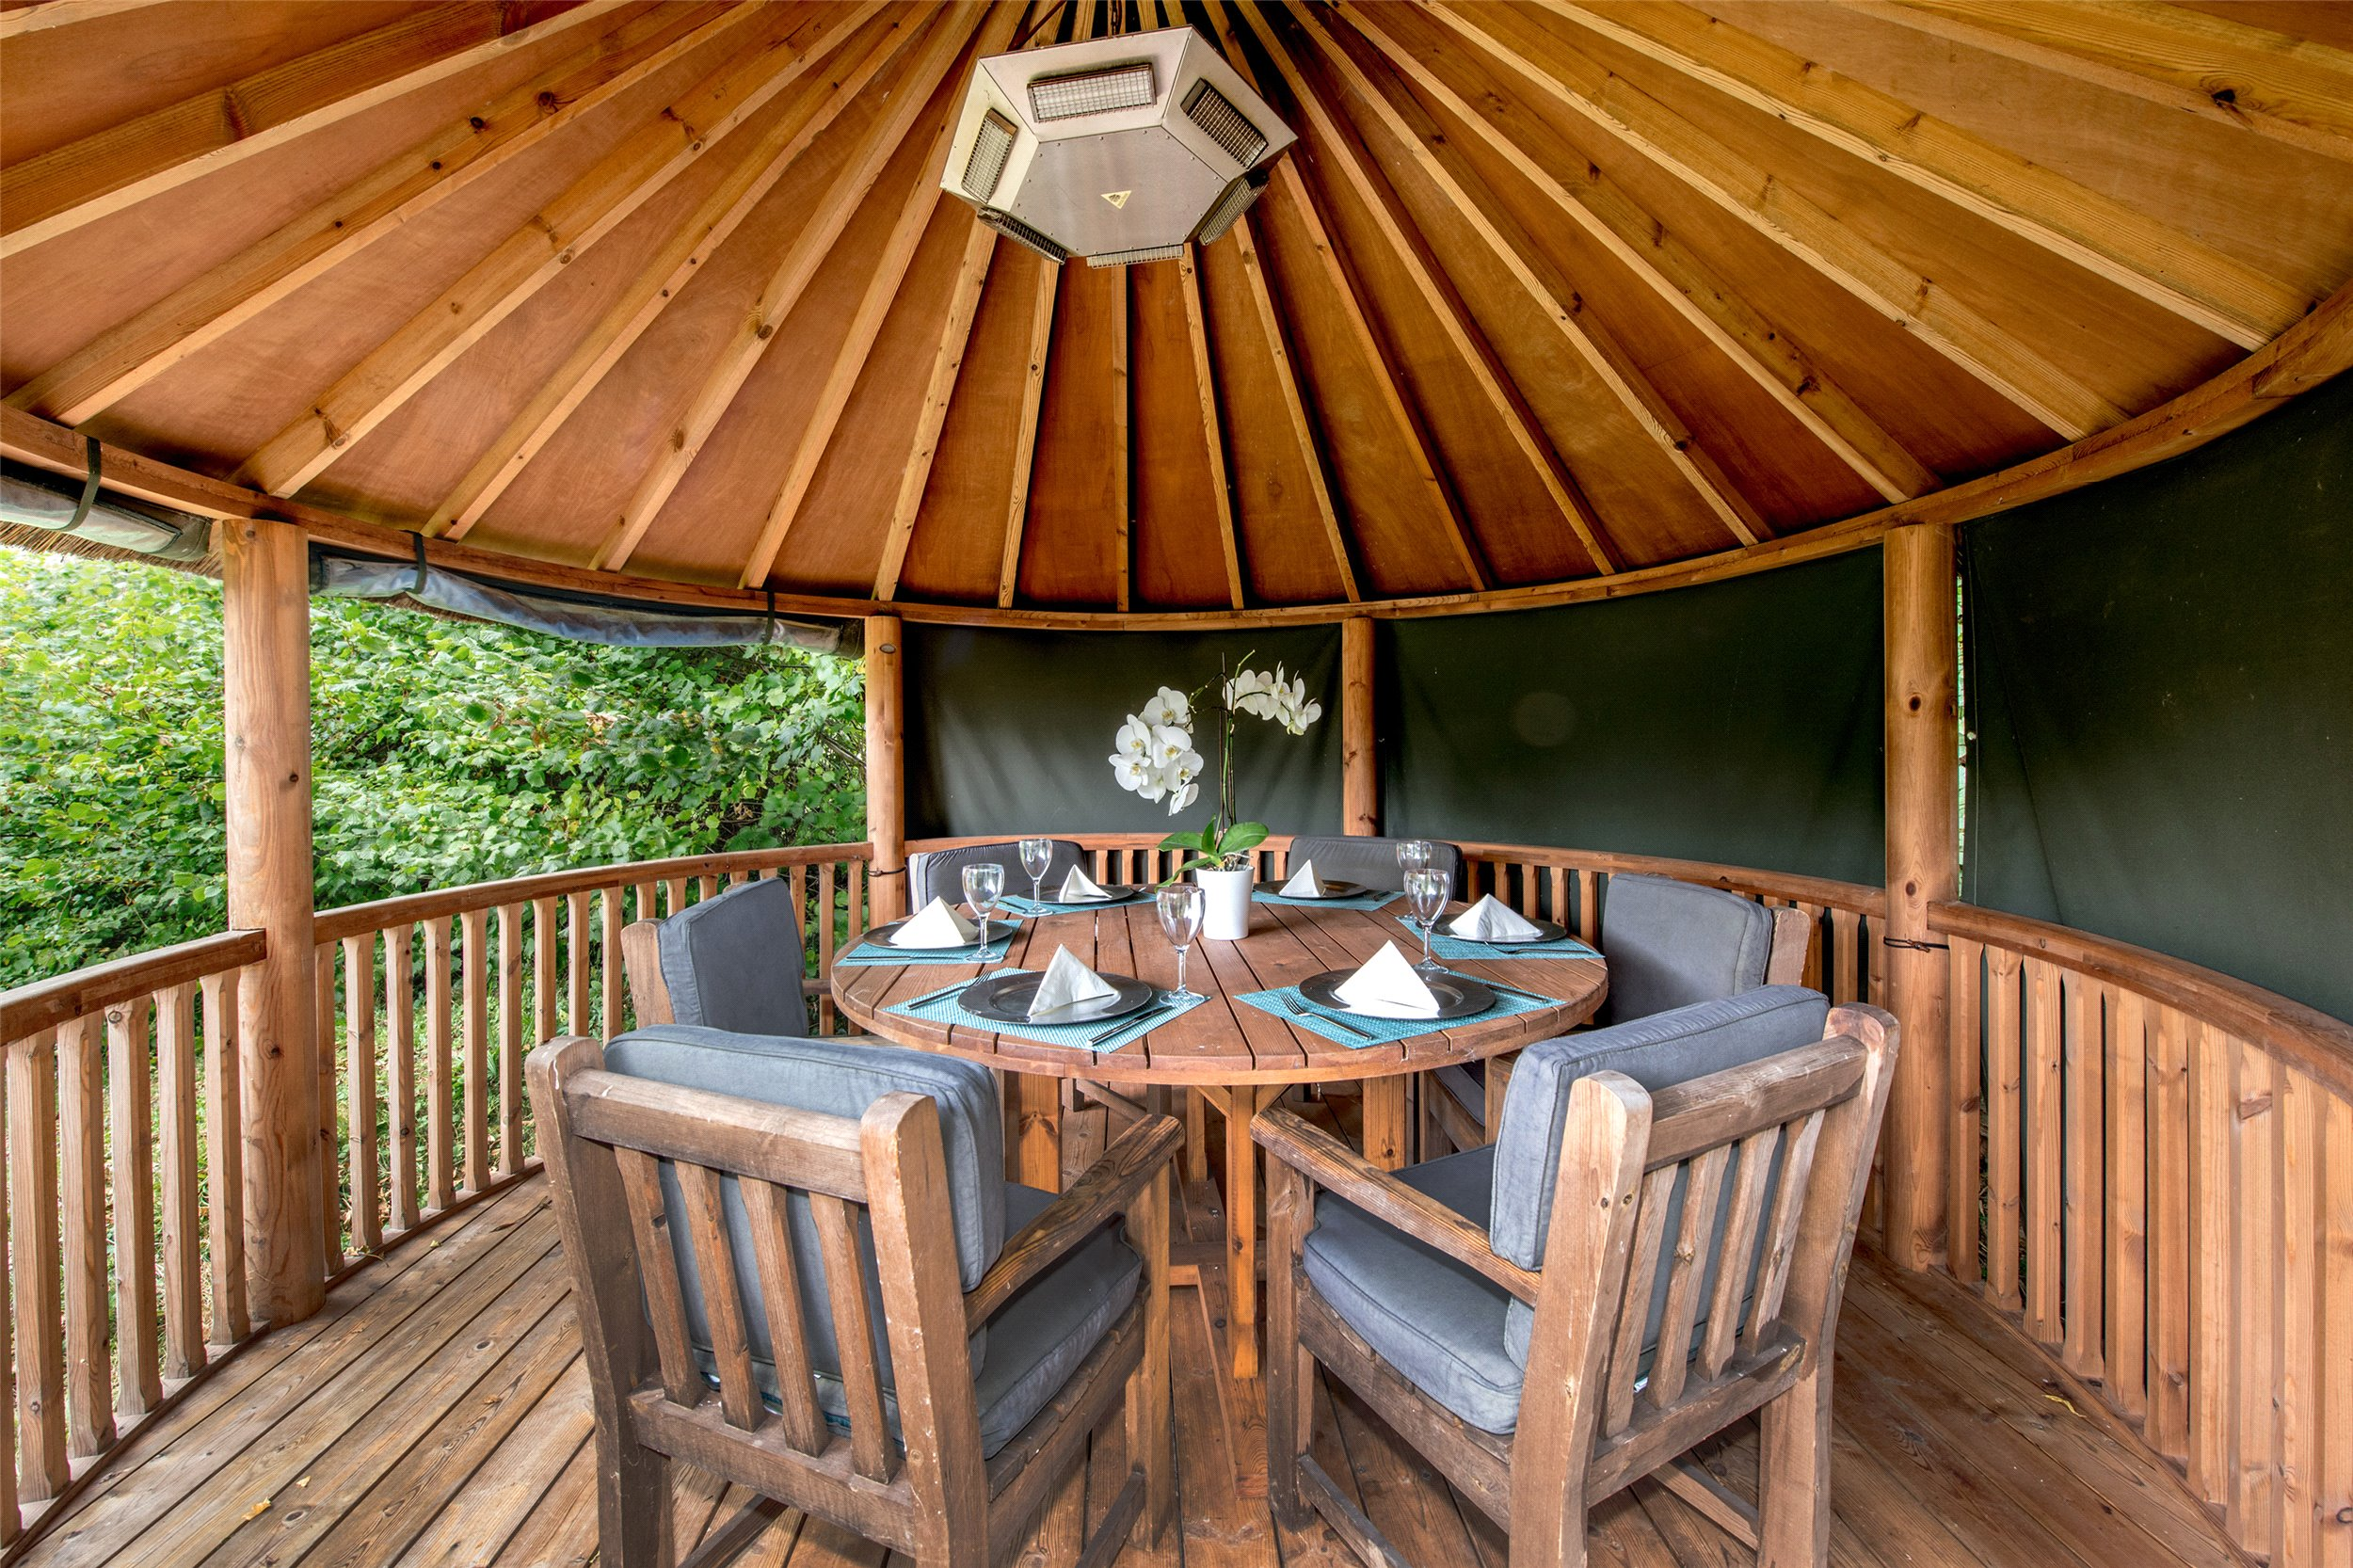 outside dining in African Hut style deck area